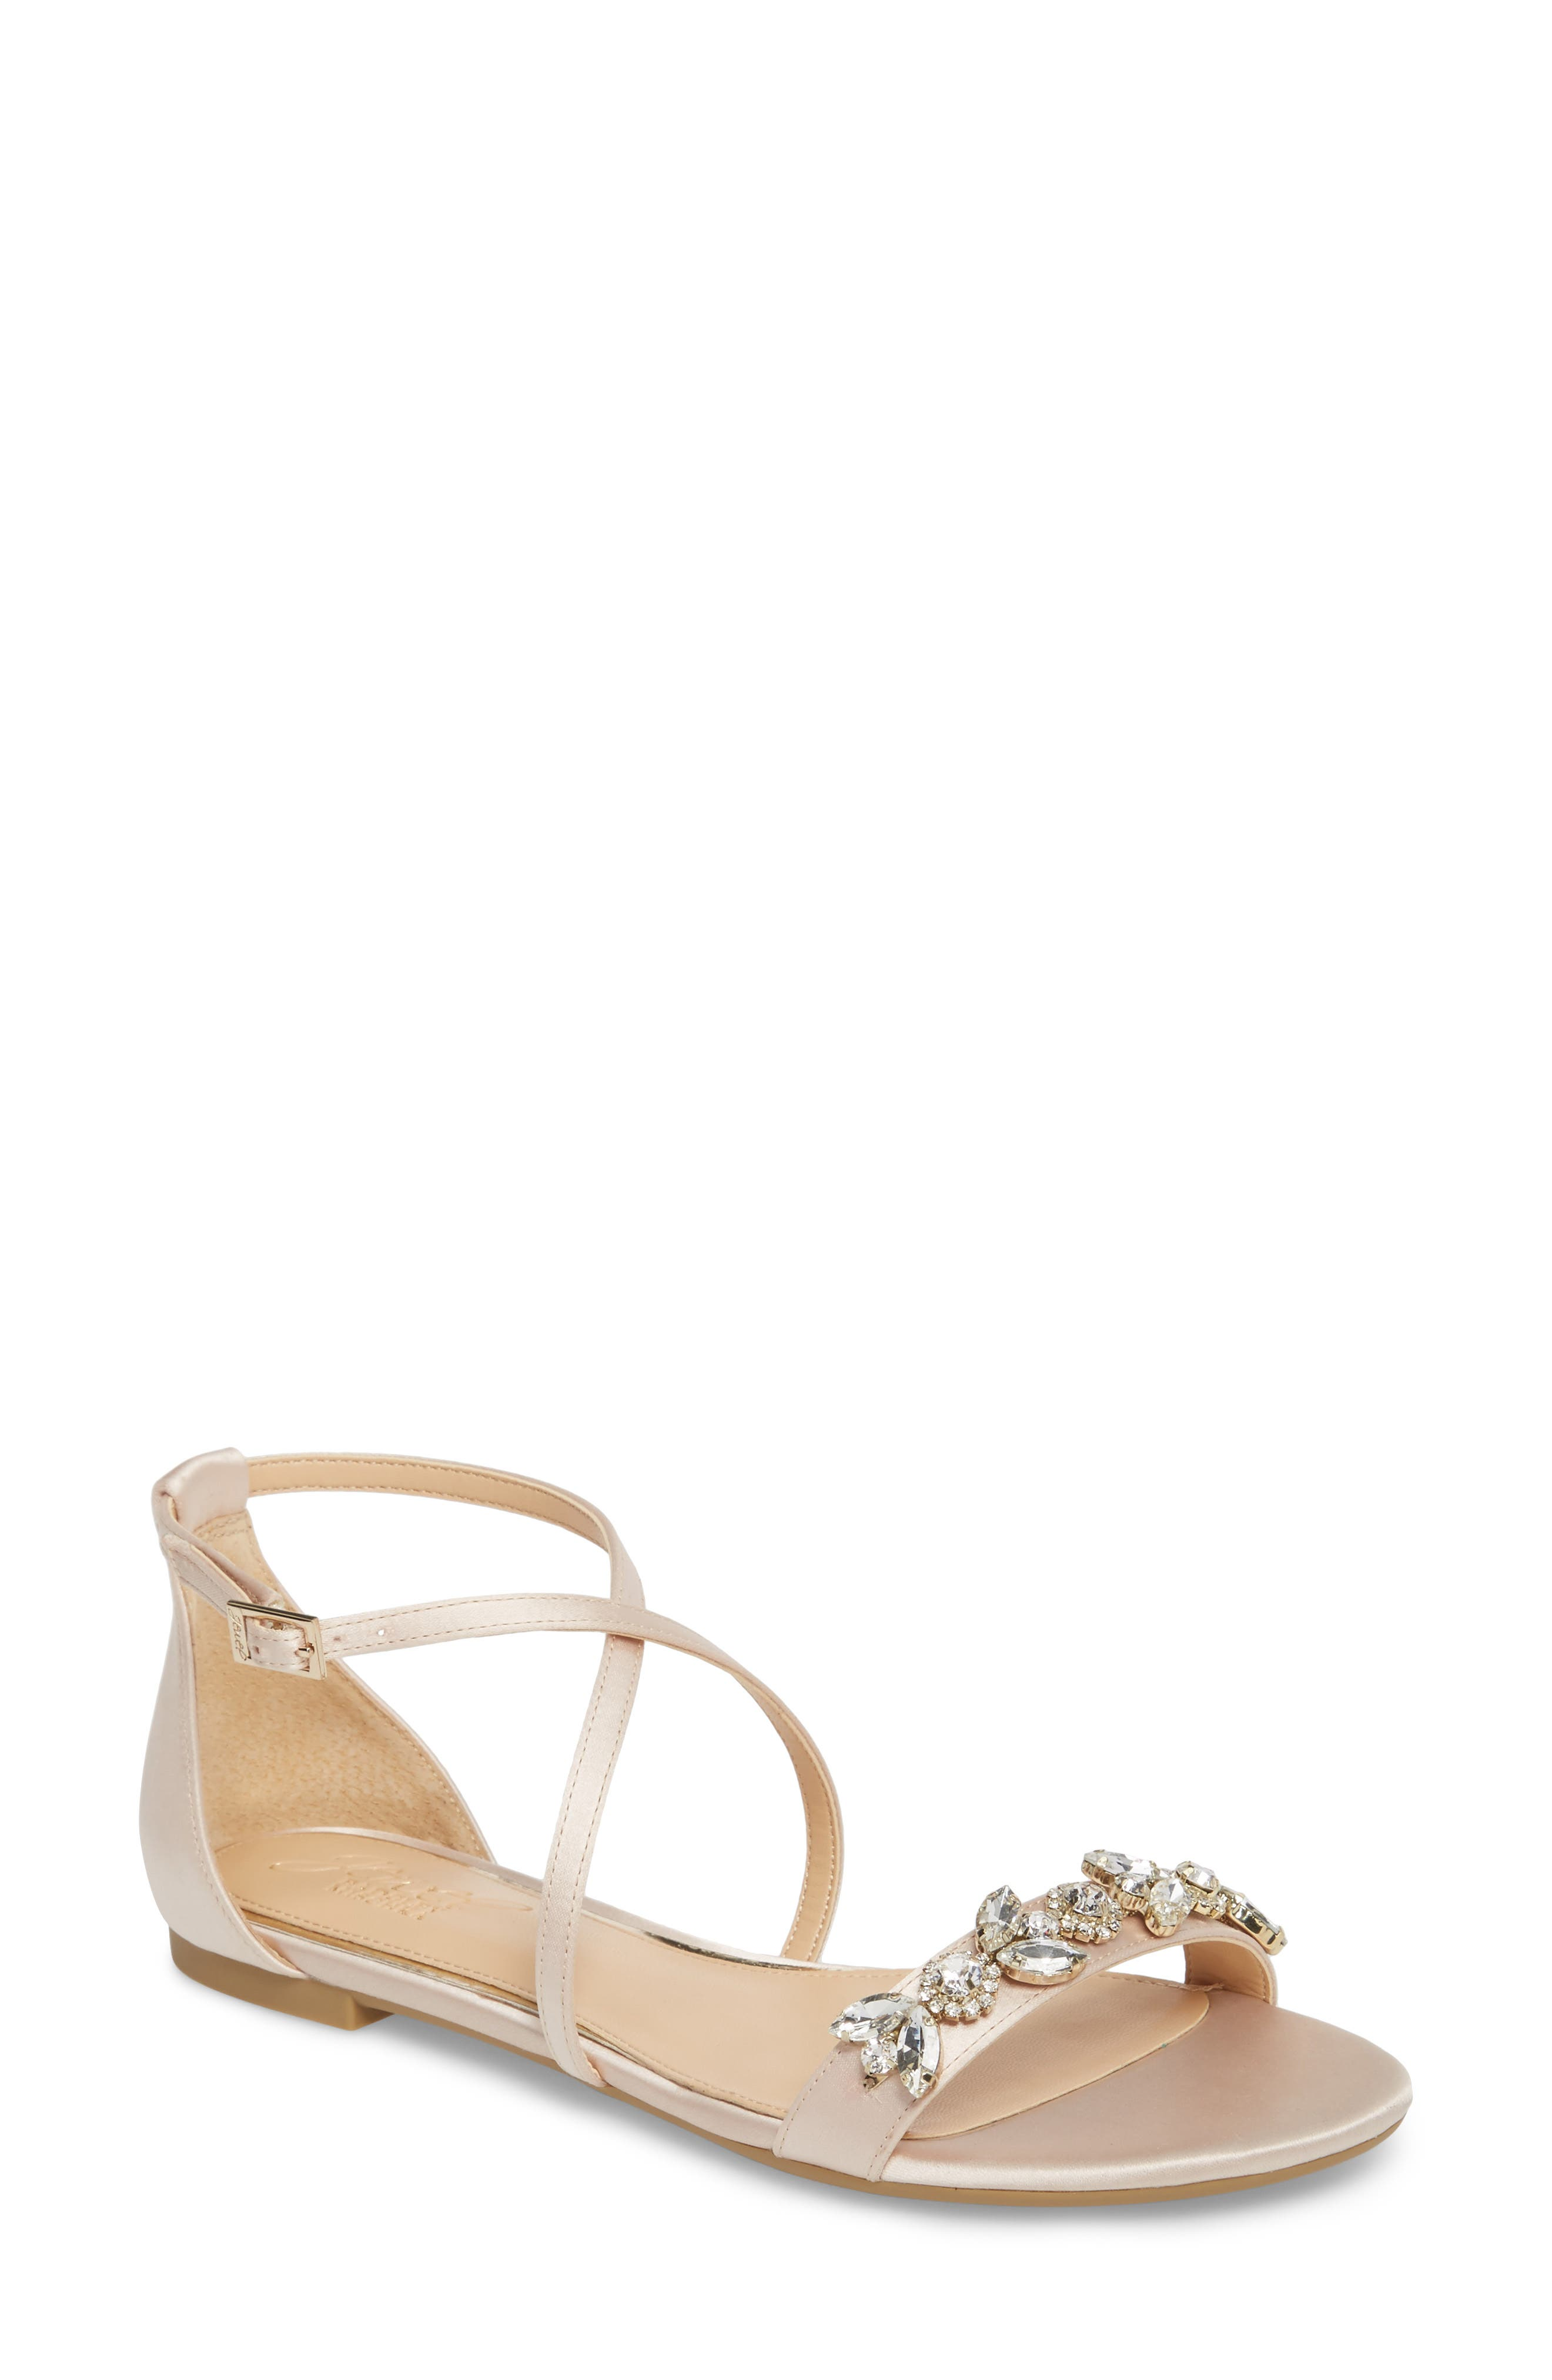 Tessy Embellished Sandal,                         Main,                         color, CHAMPAGNE SATIN